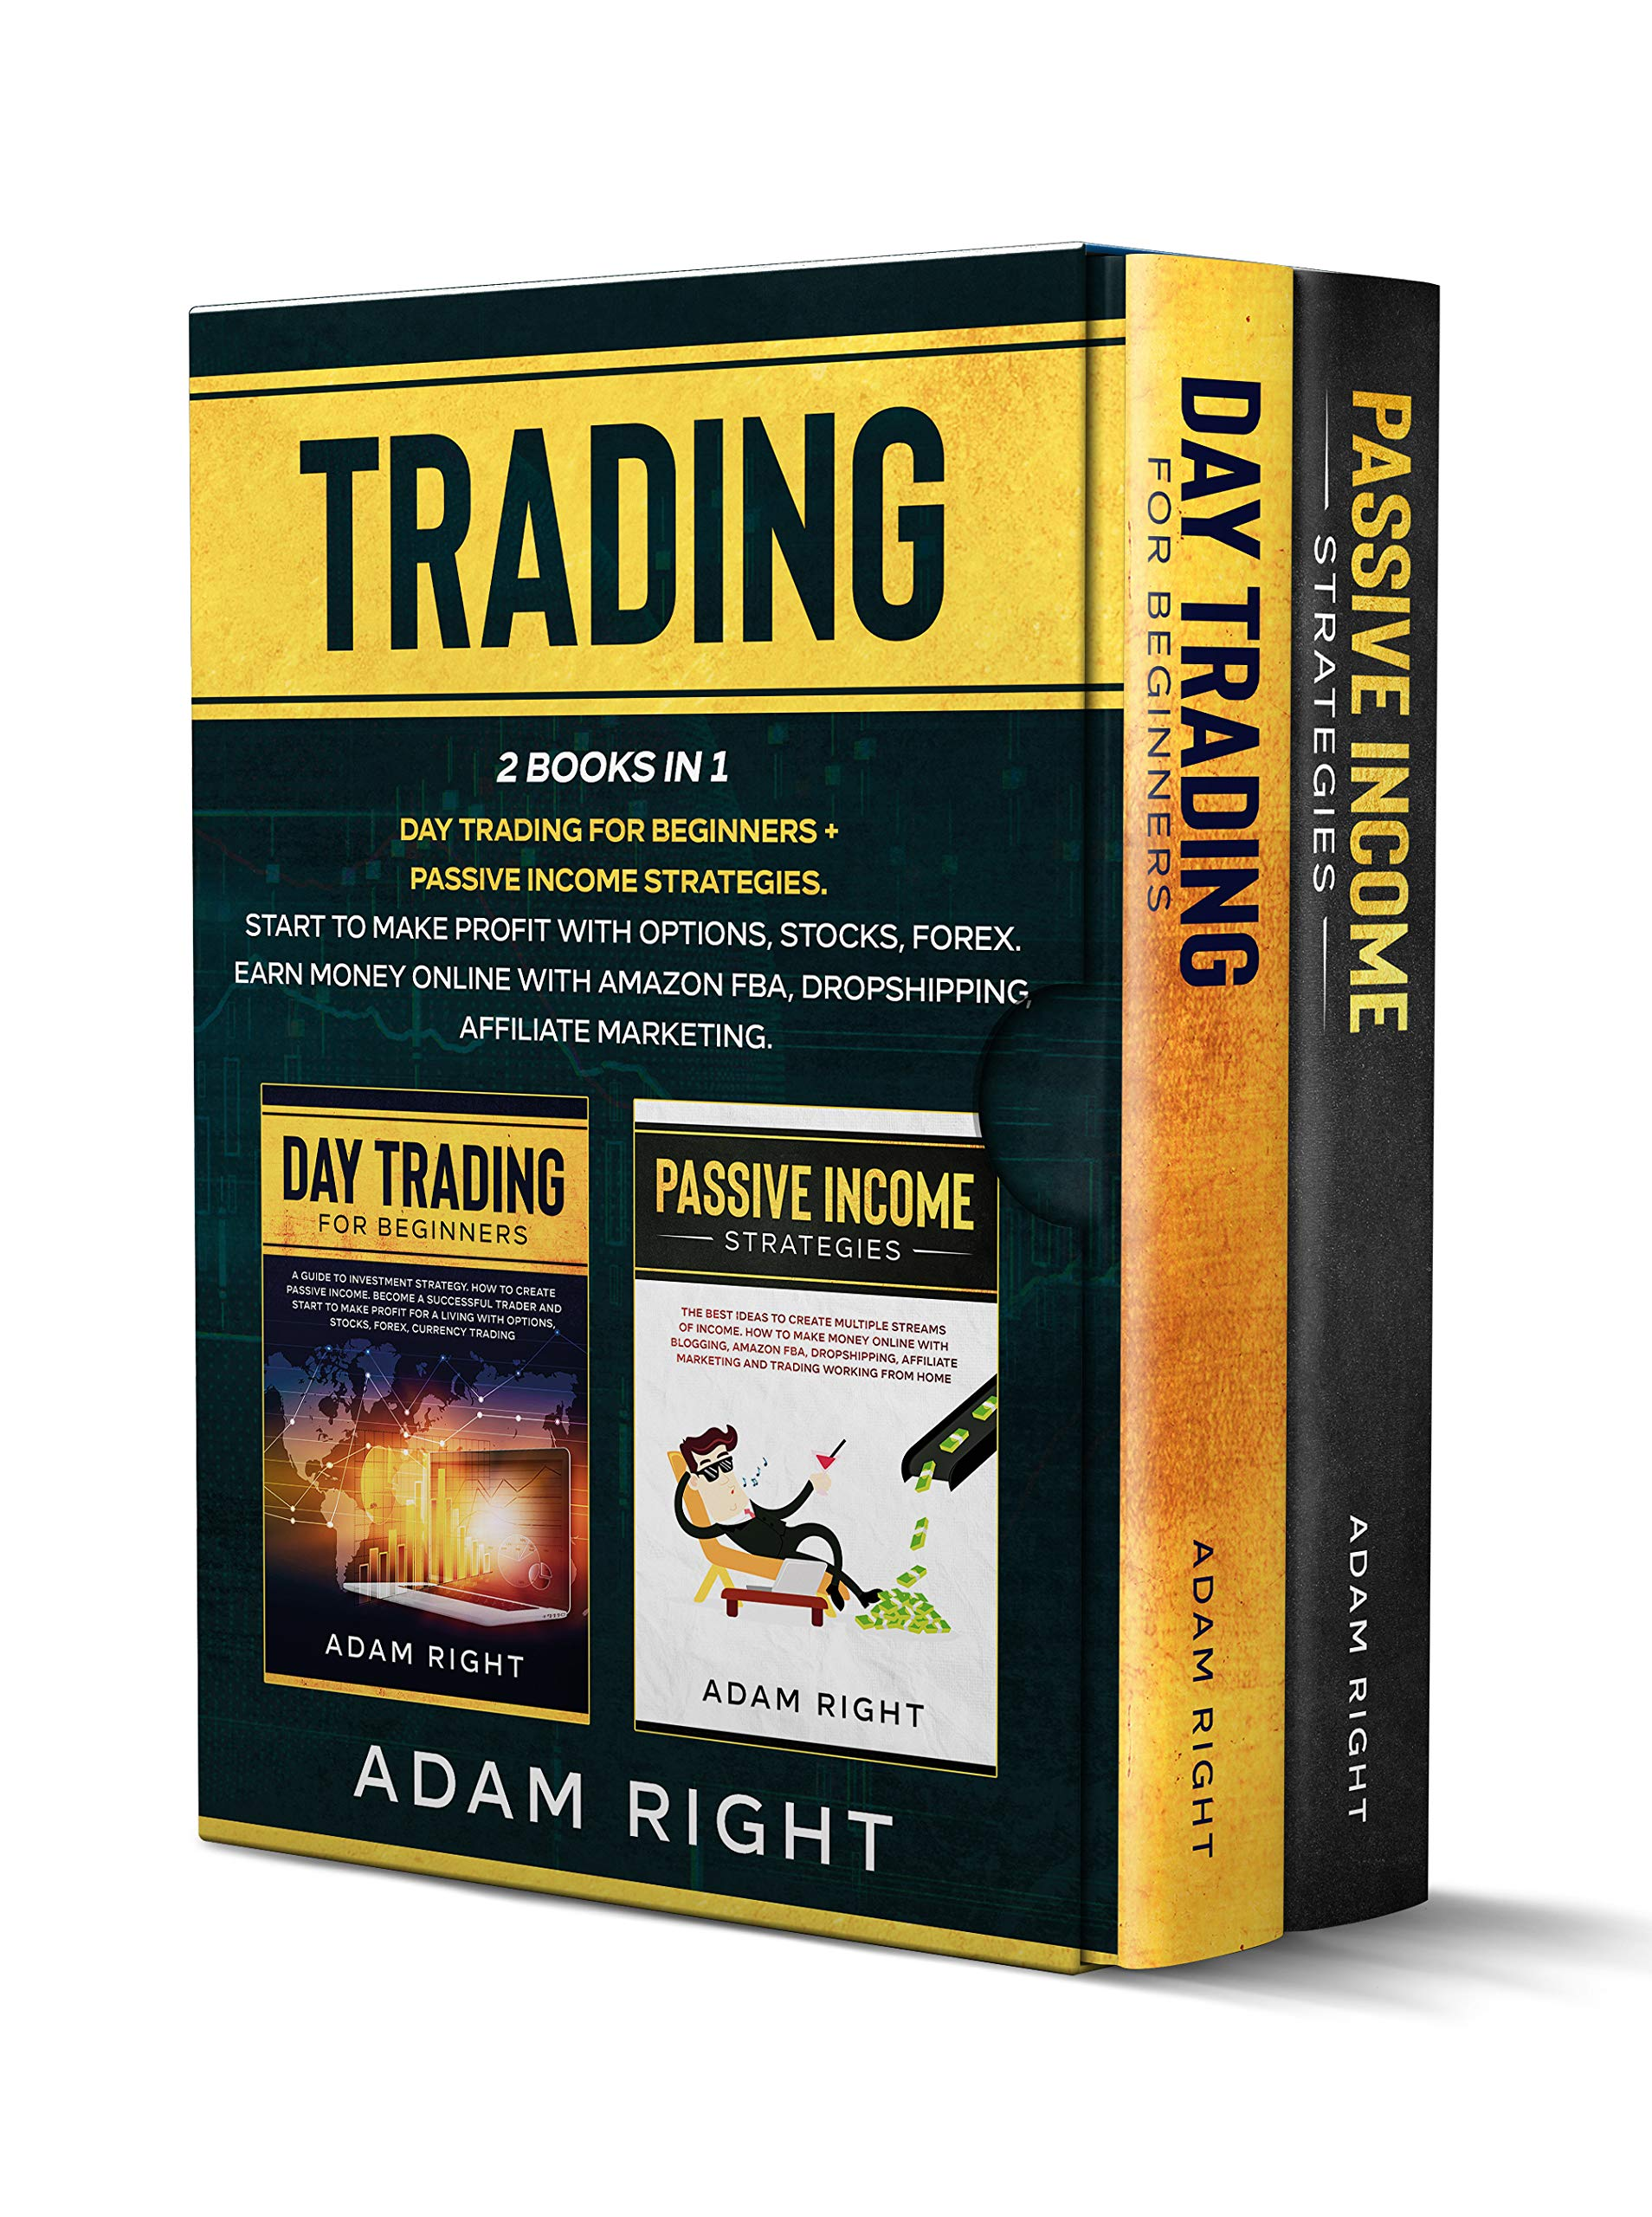 TRADING: This Book Contains: Day Trading For Beginners+ Passive Income Strategies.Start To Make Profit With Options,Stocks,Forex.Earn Money Online with Amazon FBA,Dropshipping and Affiliate Marketing